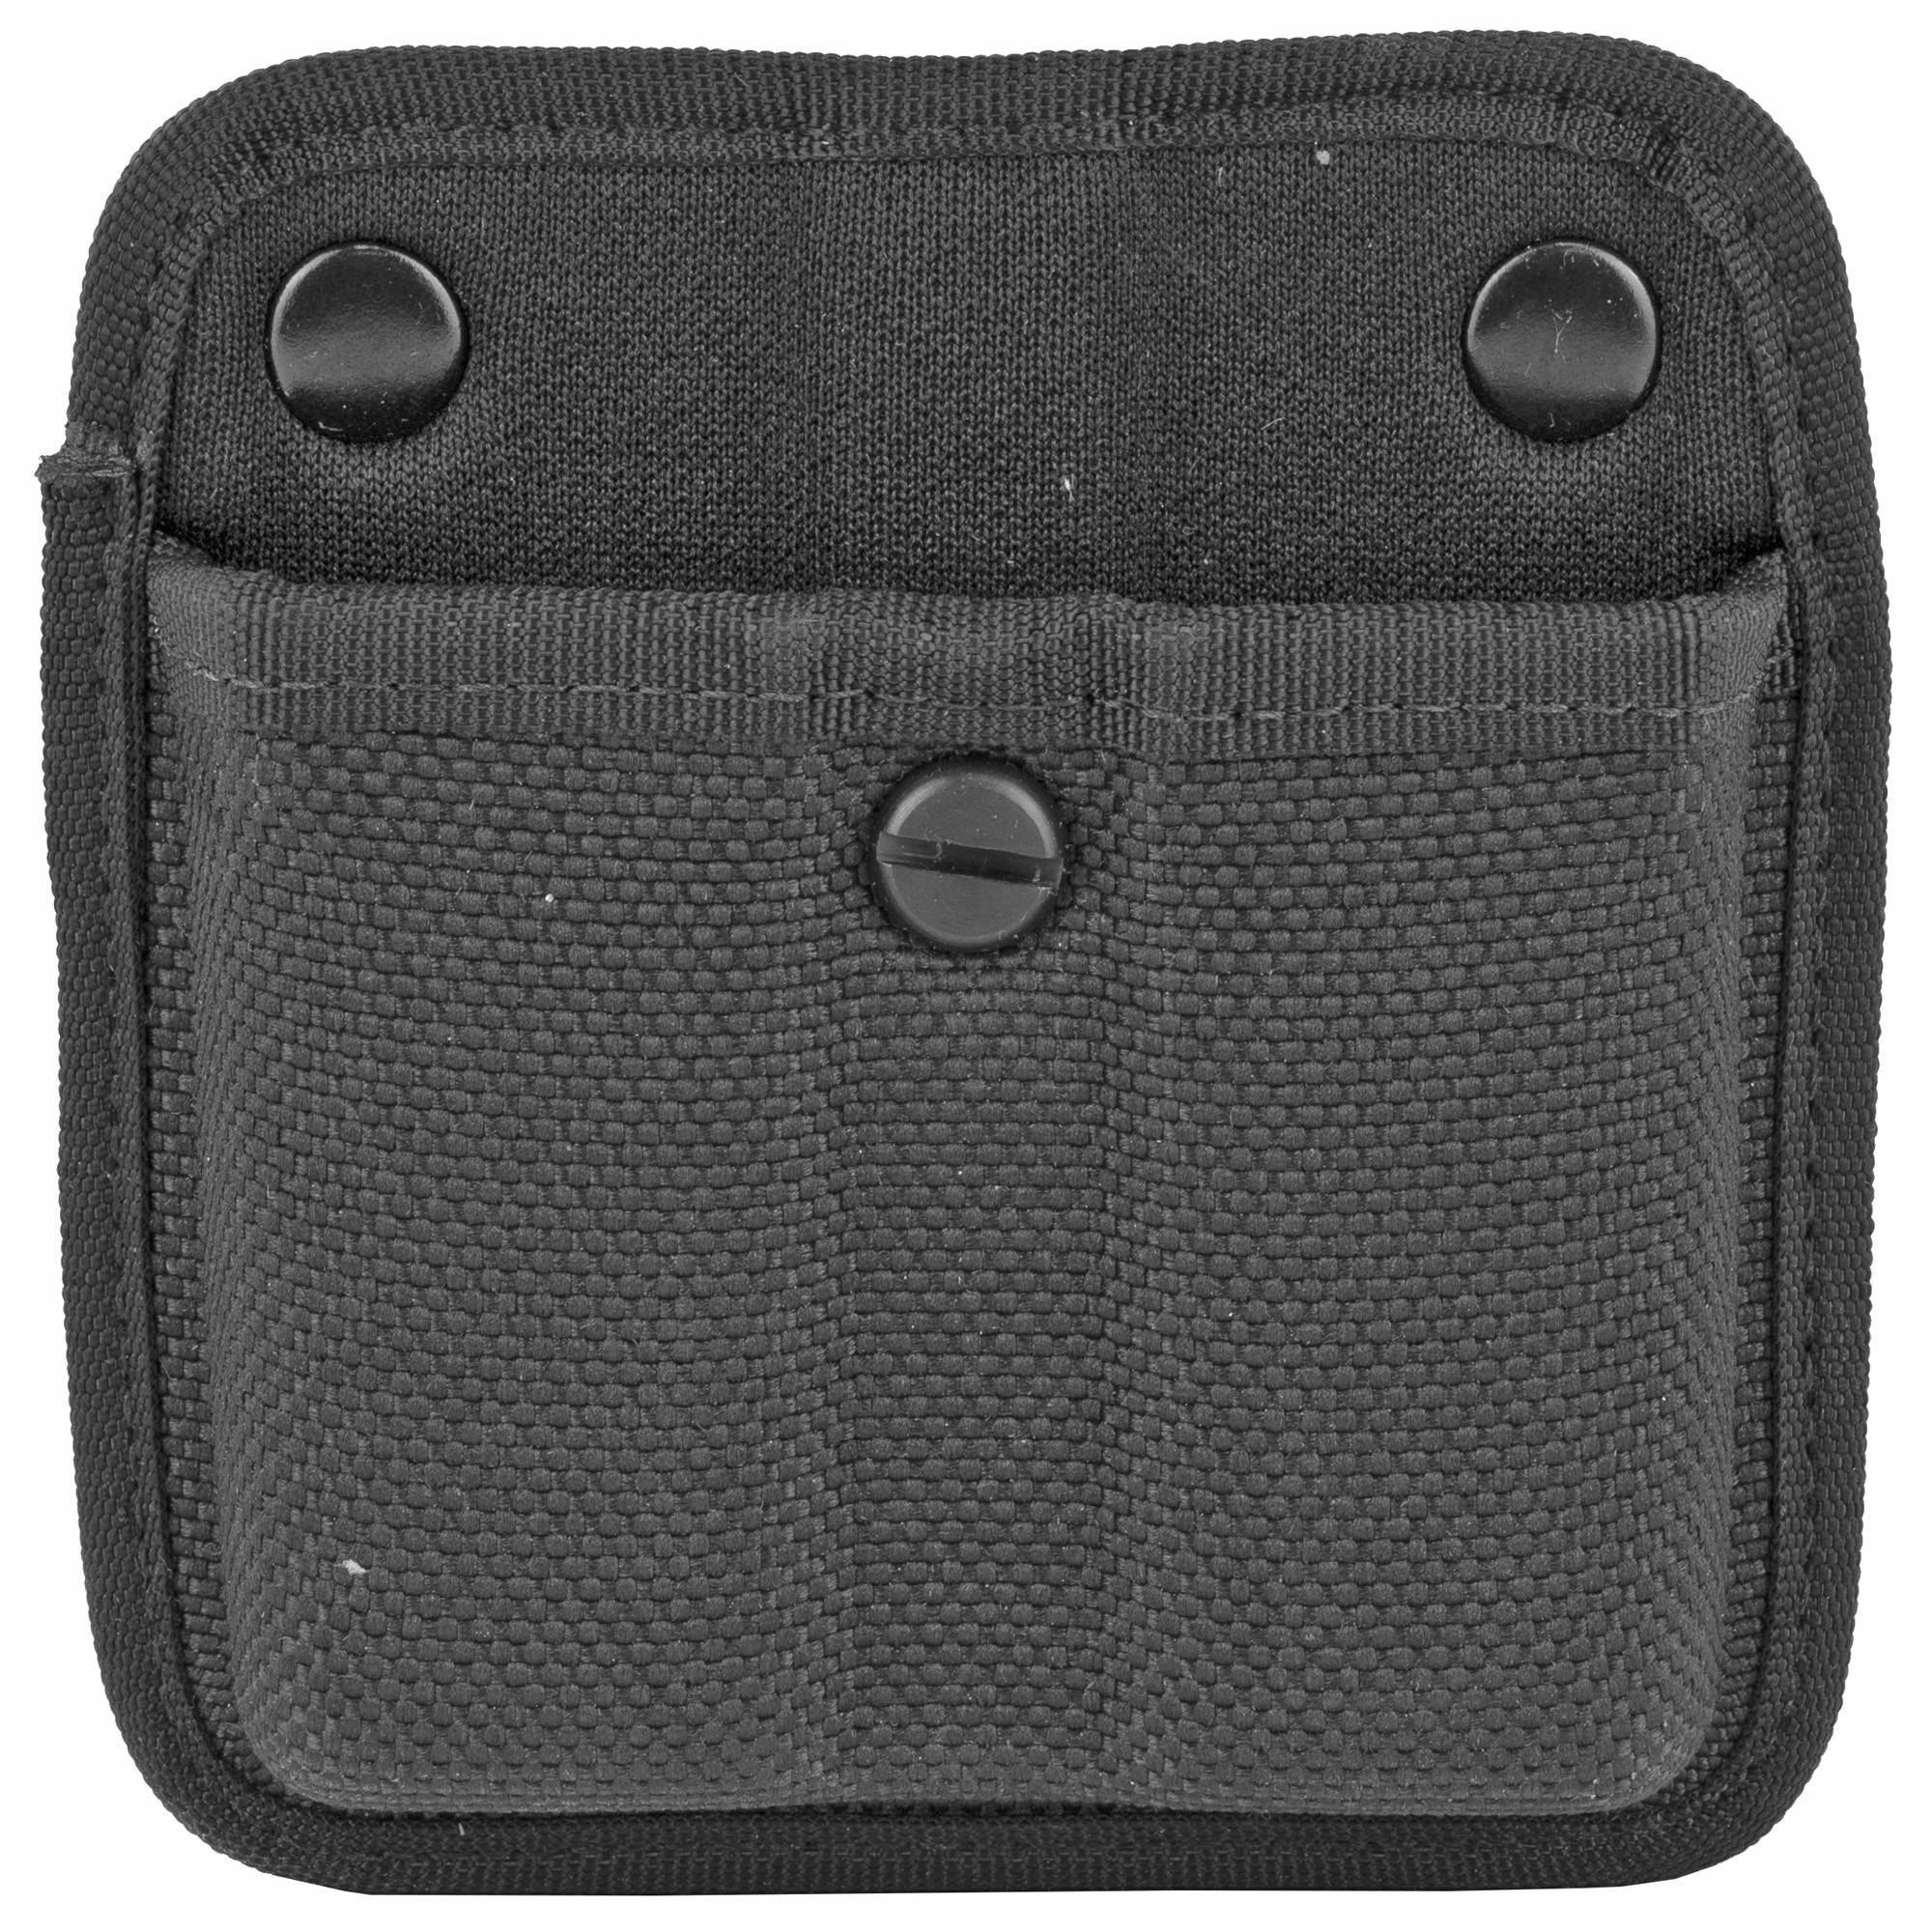 The Model 7320 AccuMold Triple Threat II Double Magazine Pouch is an open top design and features an injection molded belt loop for vertical or horizontal carry. Made with trilaminate construction with Coptex knit lining and fits 2.25 in. (58 mm) duty belts. Features an adjustable tension screw.